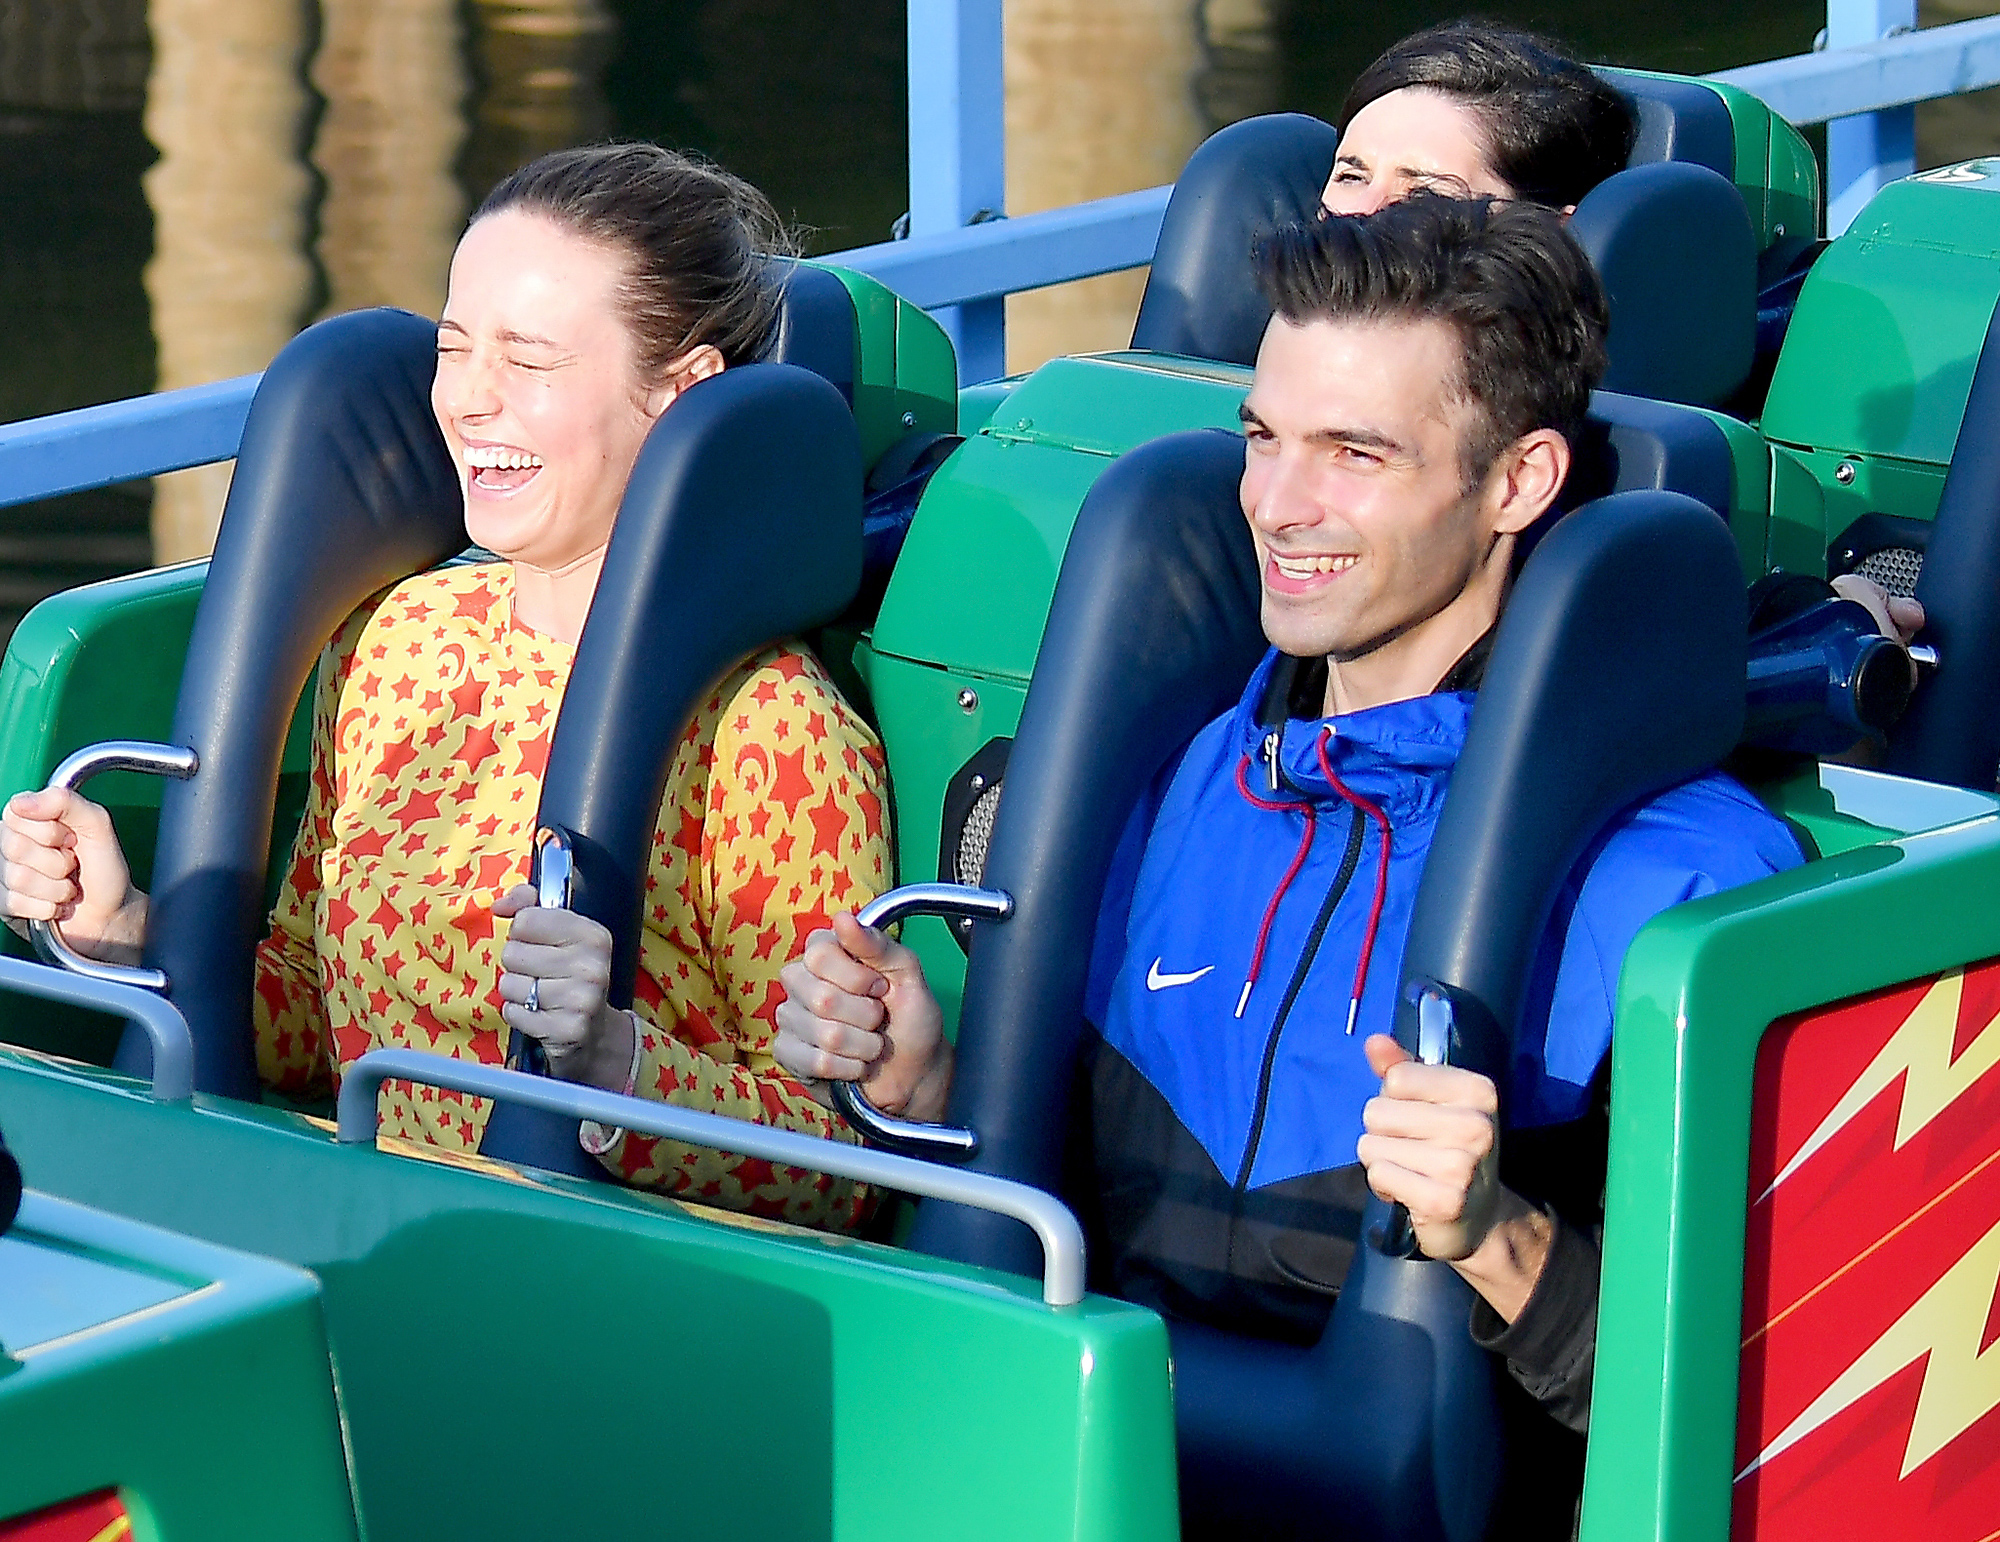 EXCLUSIVE: Brie Larson and her fiance Alex Greenwald enjoy a day at the happiest place on Earth, Disneyland